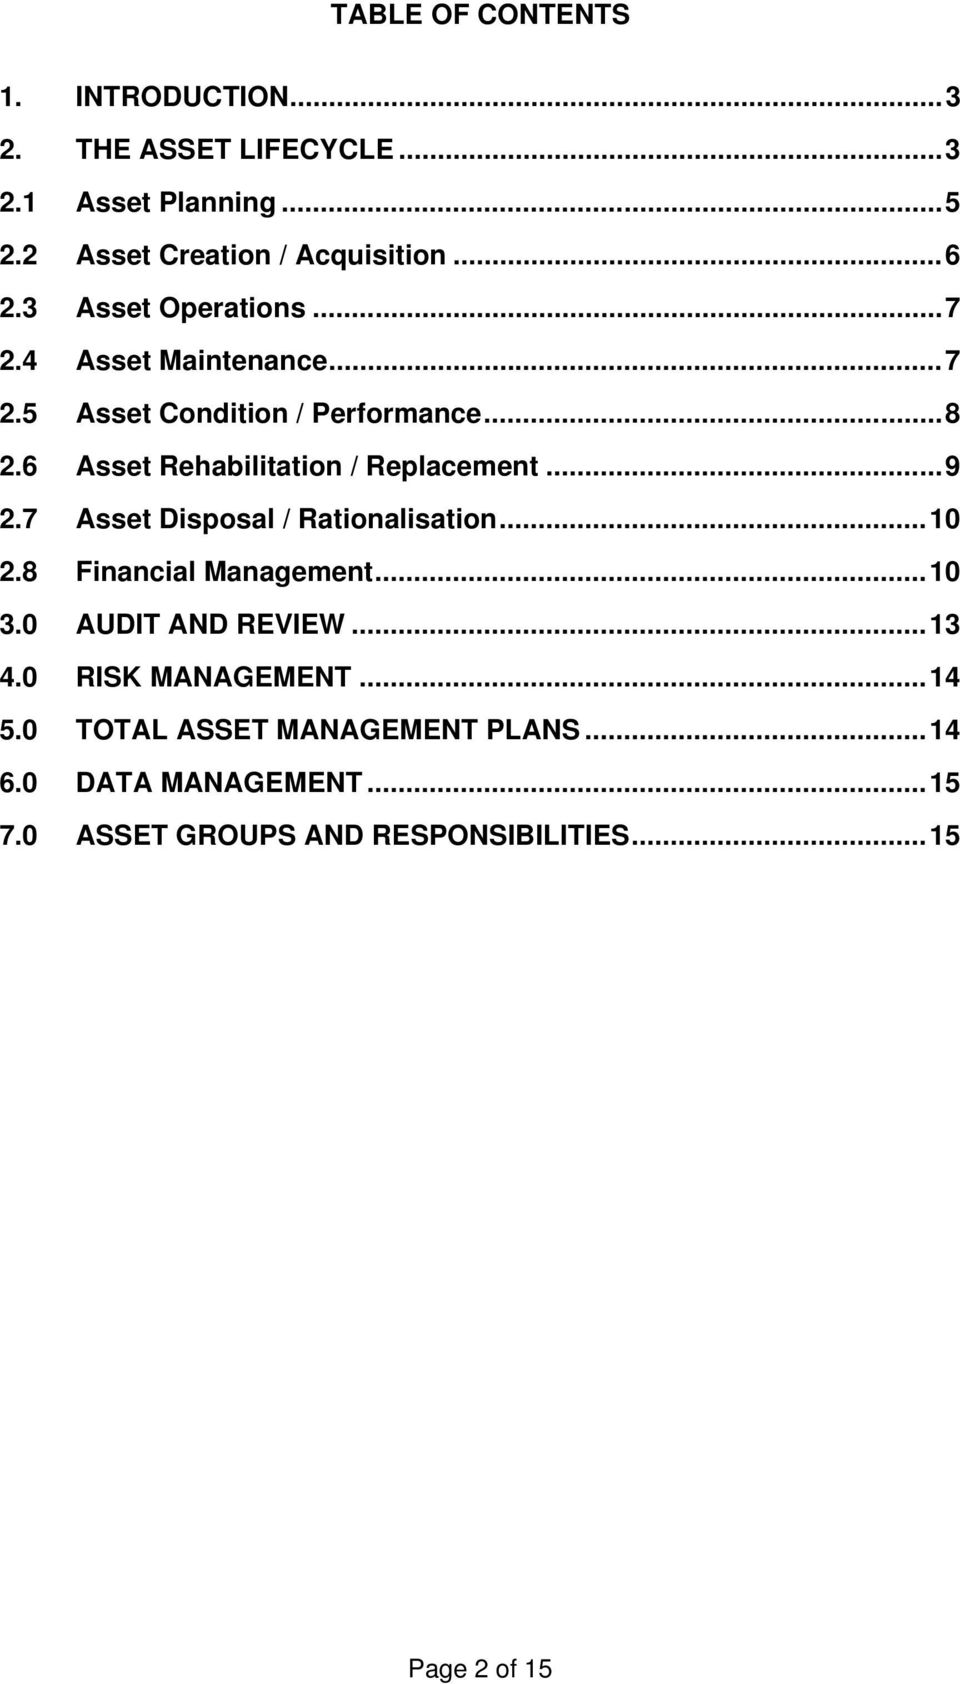 6 Asset Rehabilitation / Replacement...9 2.7 Asset Disposal / Rationalisation...10 2.8 Financial Management...10 3.